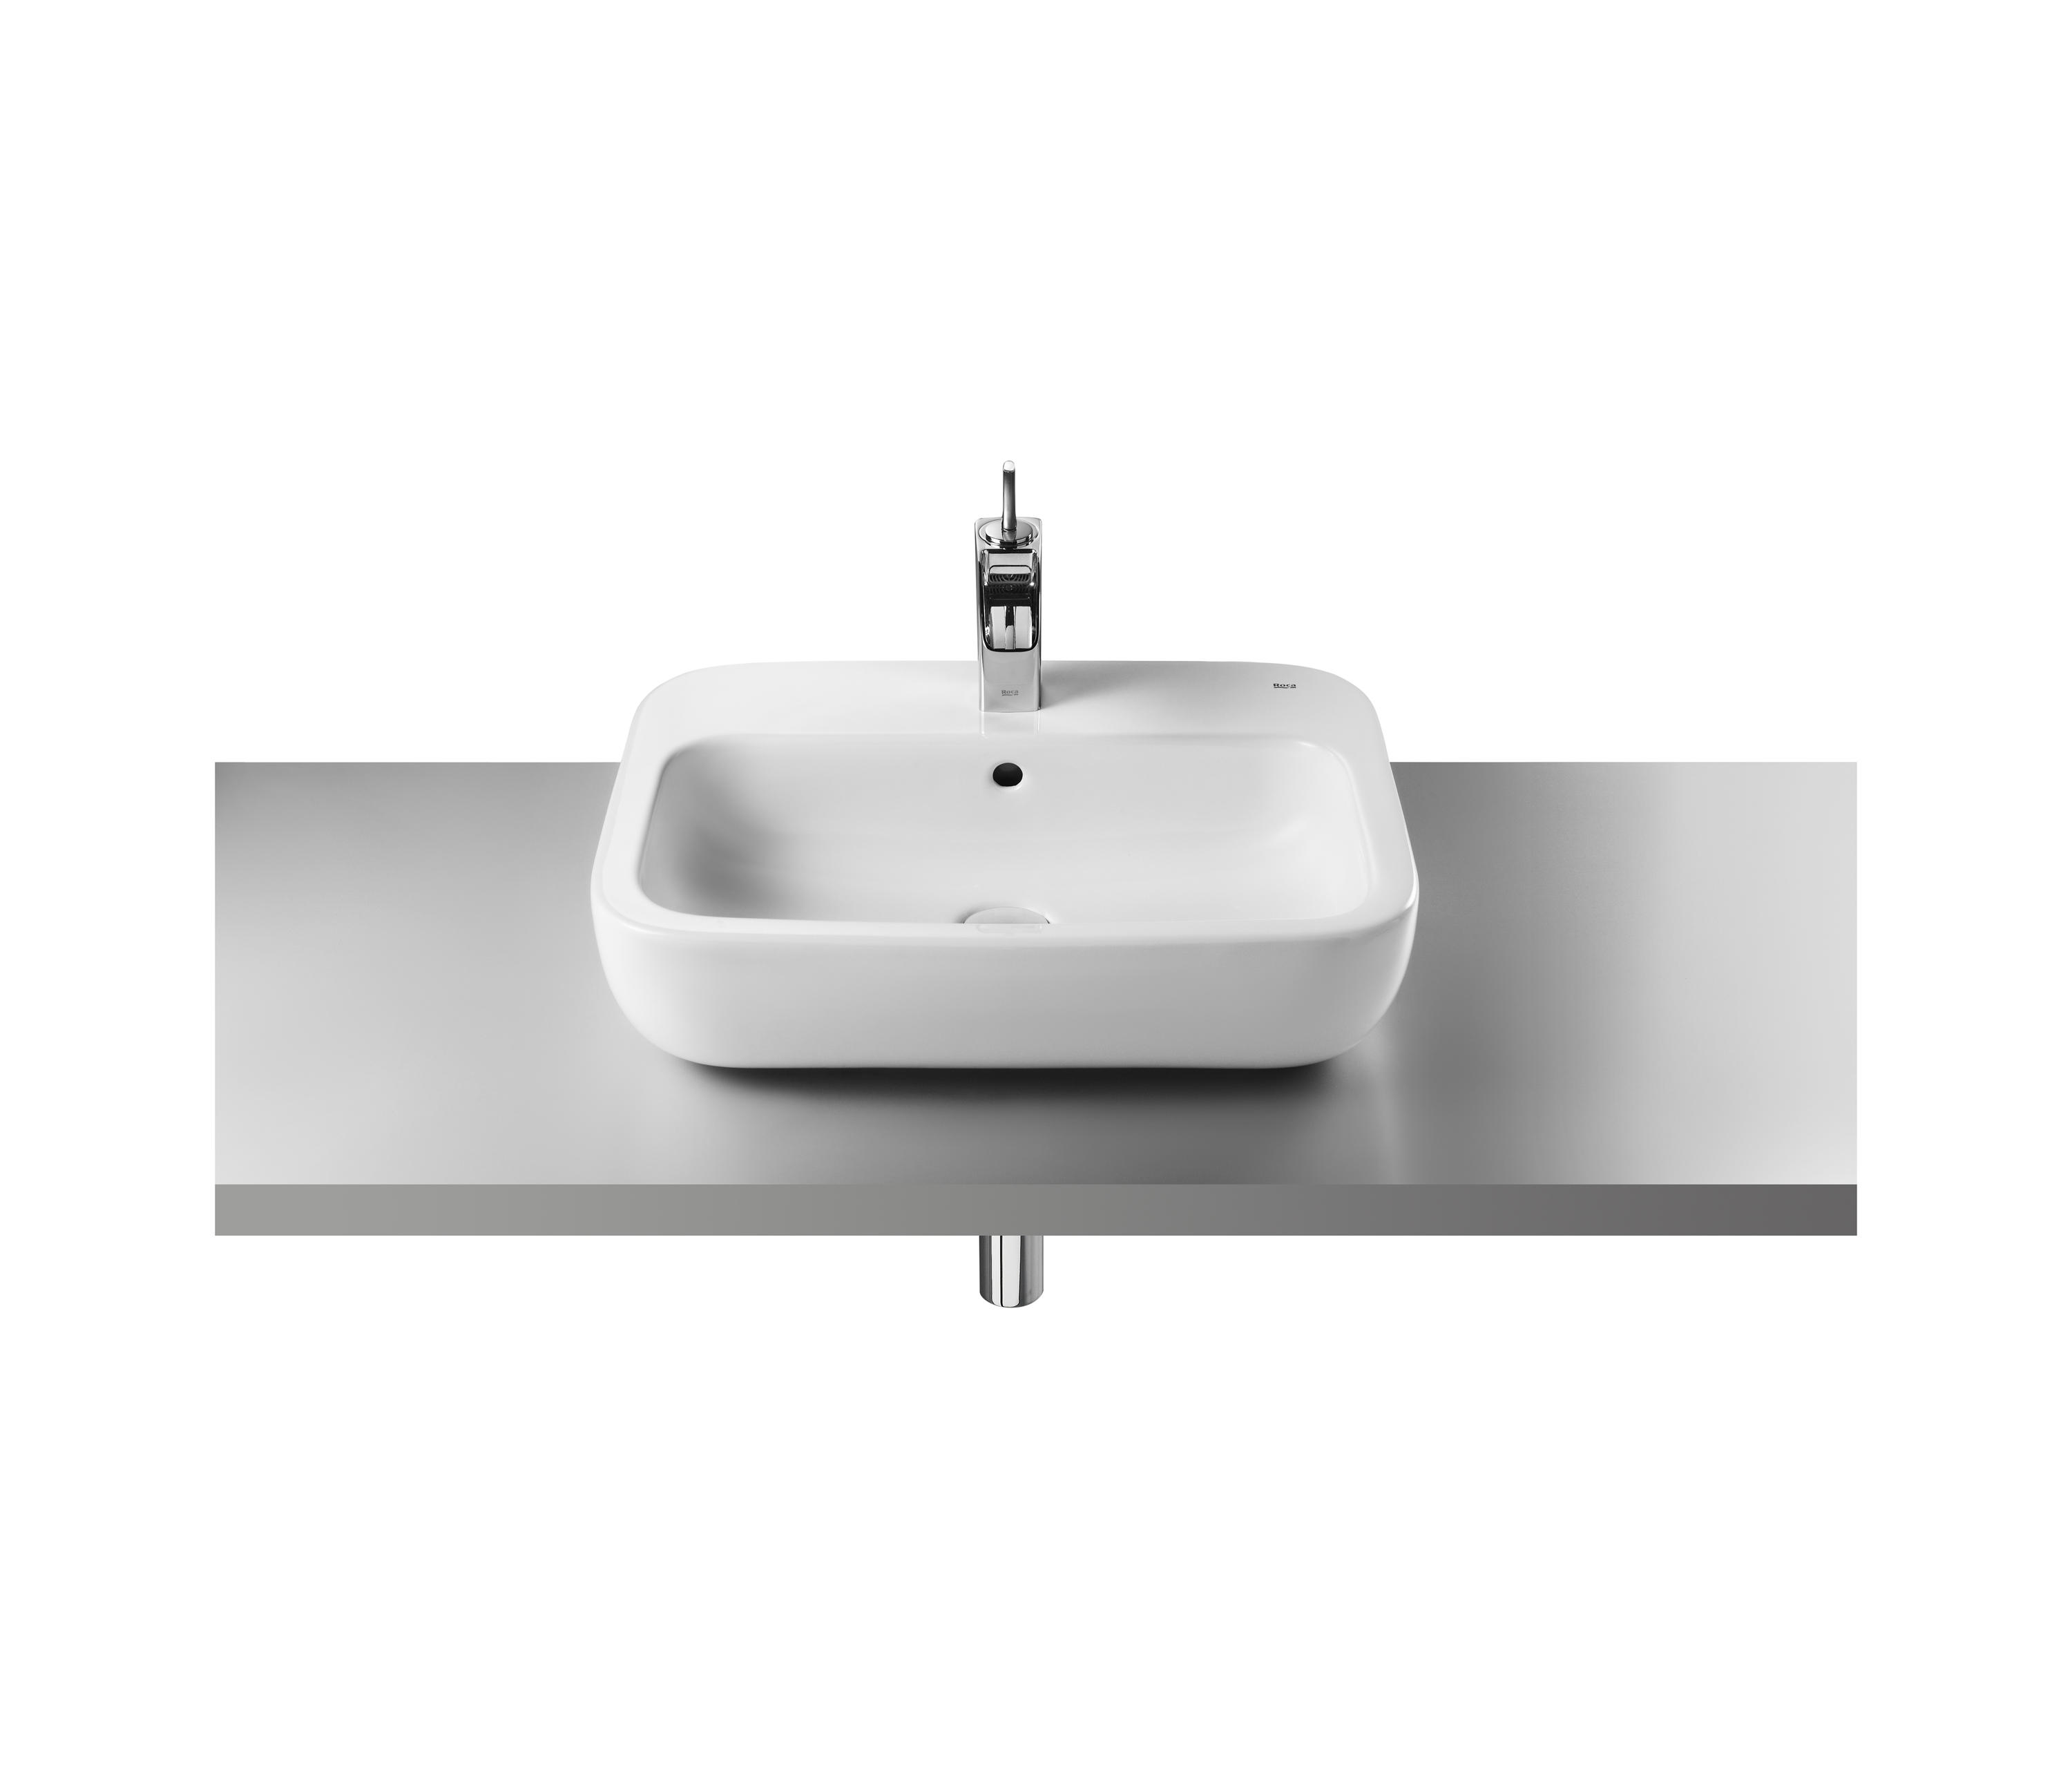 khroma basin by roca vanity units - Roca Wash Basin